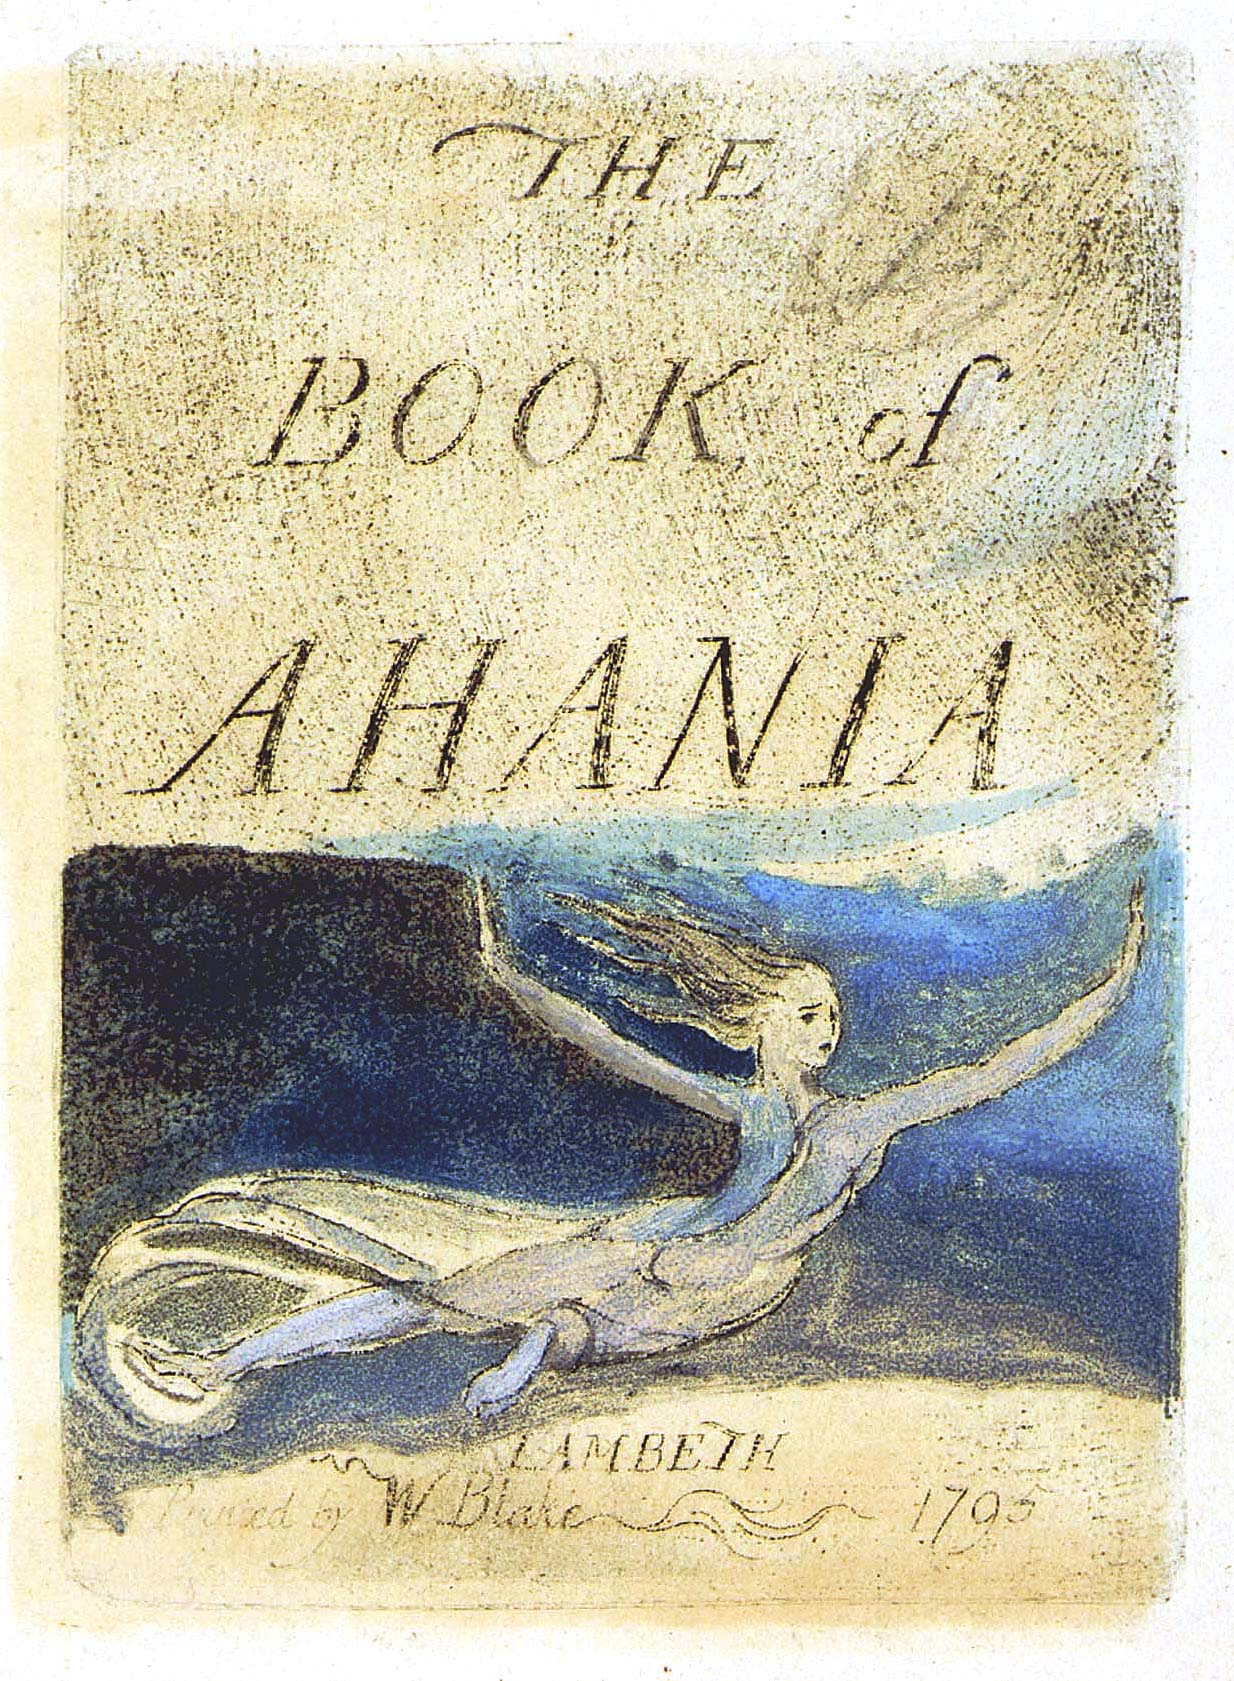 THE 	BOOK of 	AHANIA 	LAMBETH 	Printed by W Blake 1795